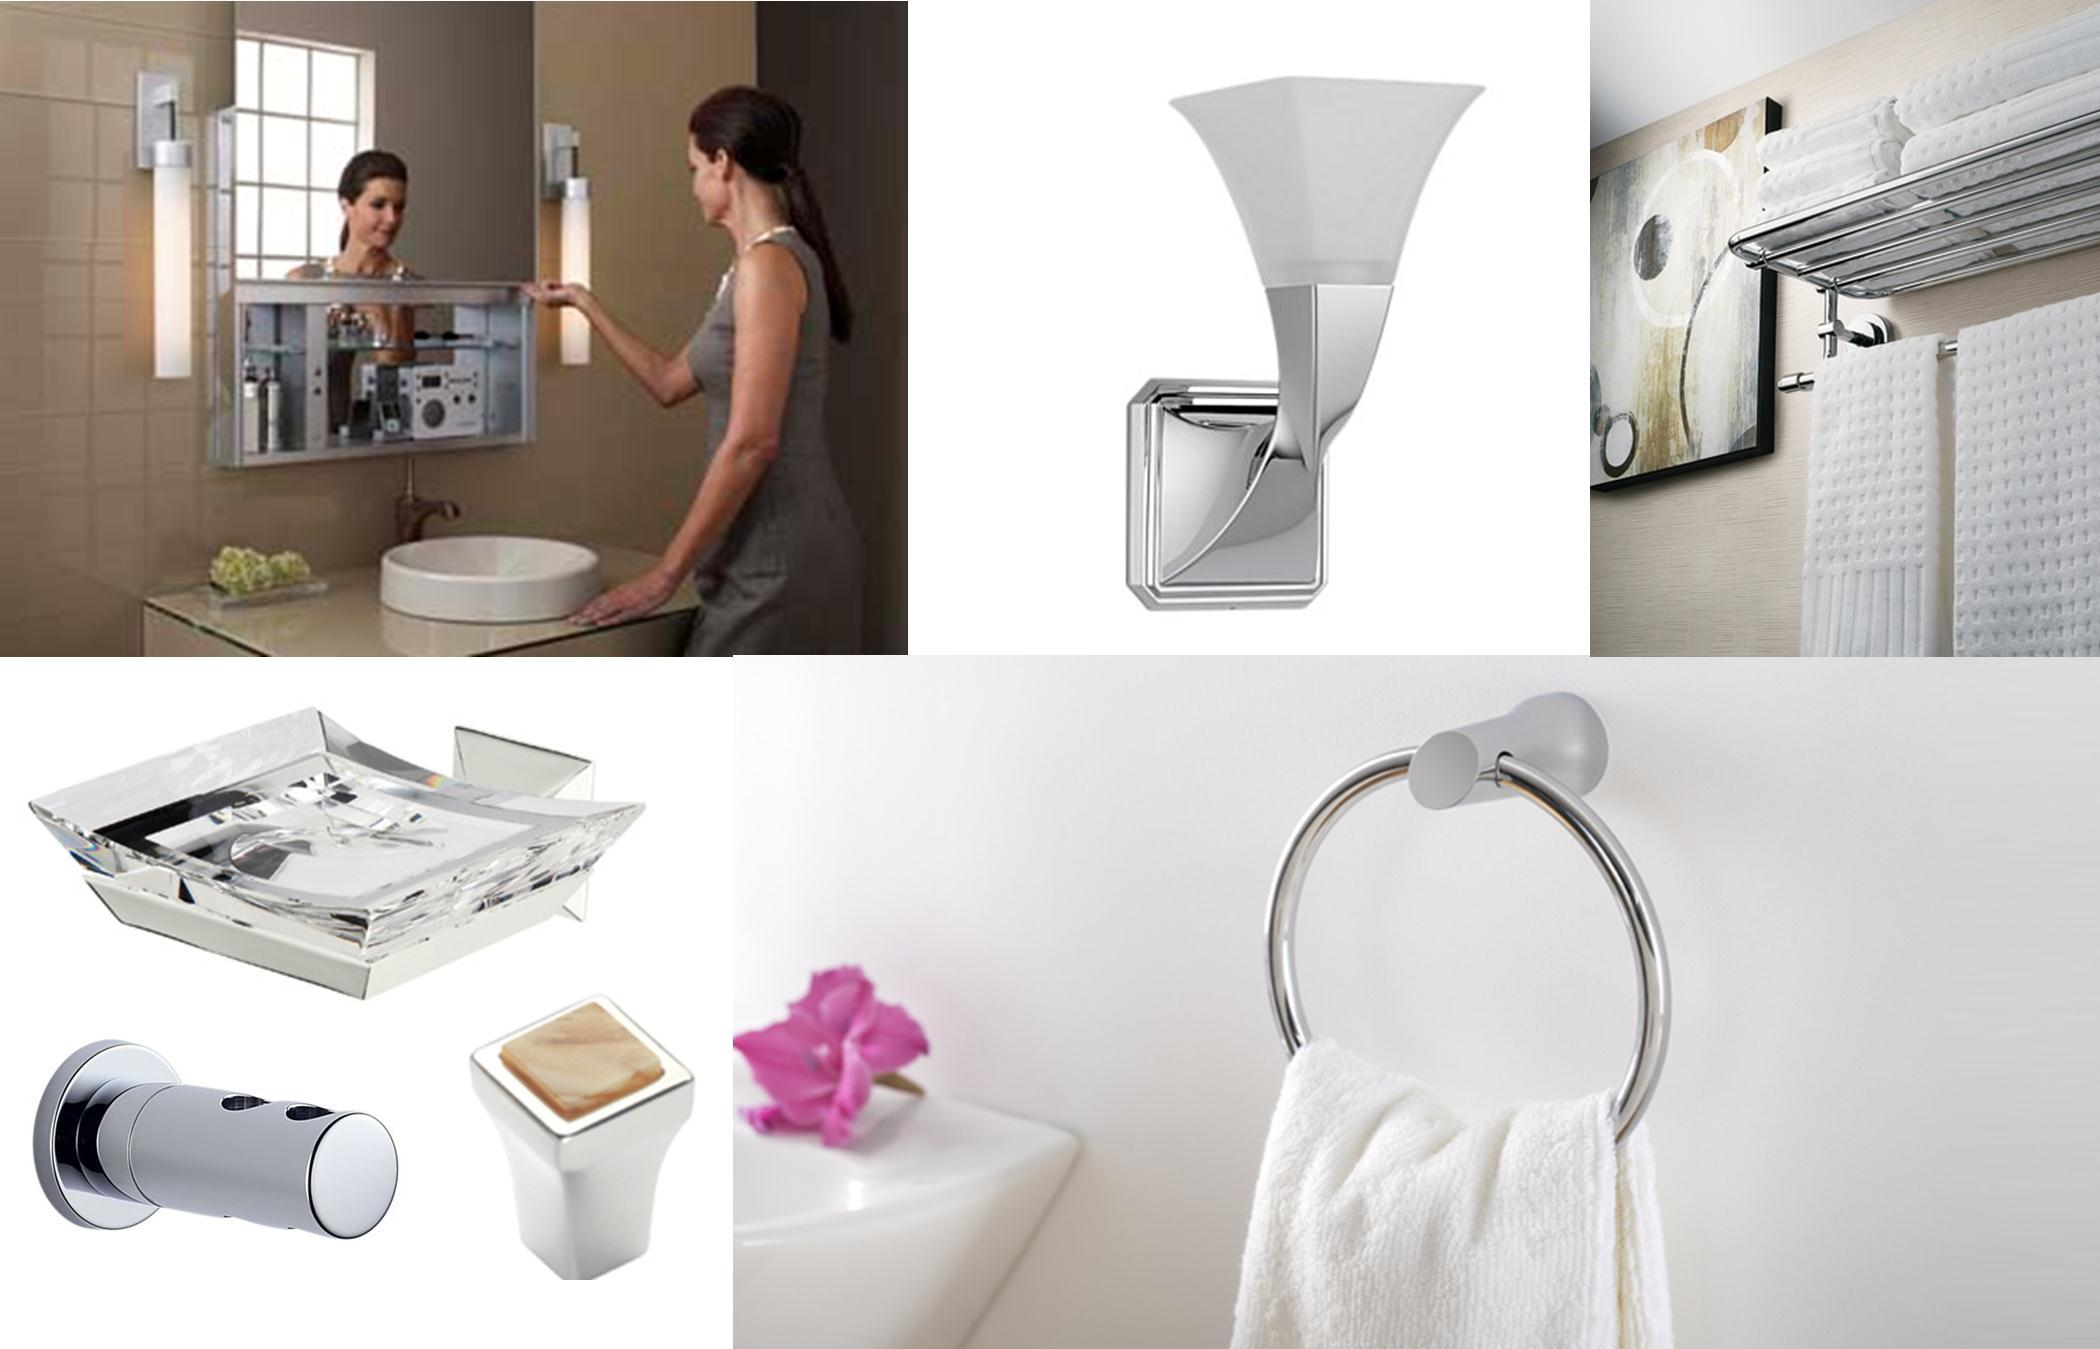 sleek & chic: bathroom accessories - interior design center of st